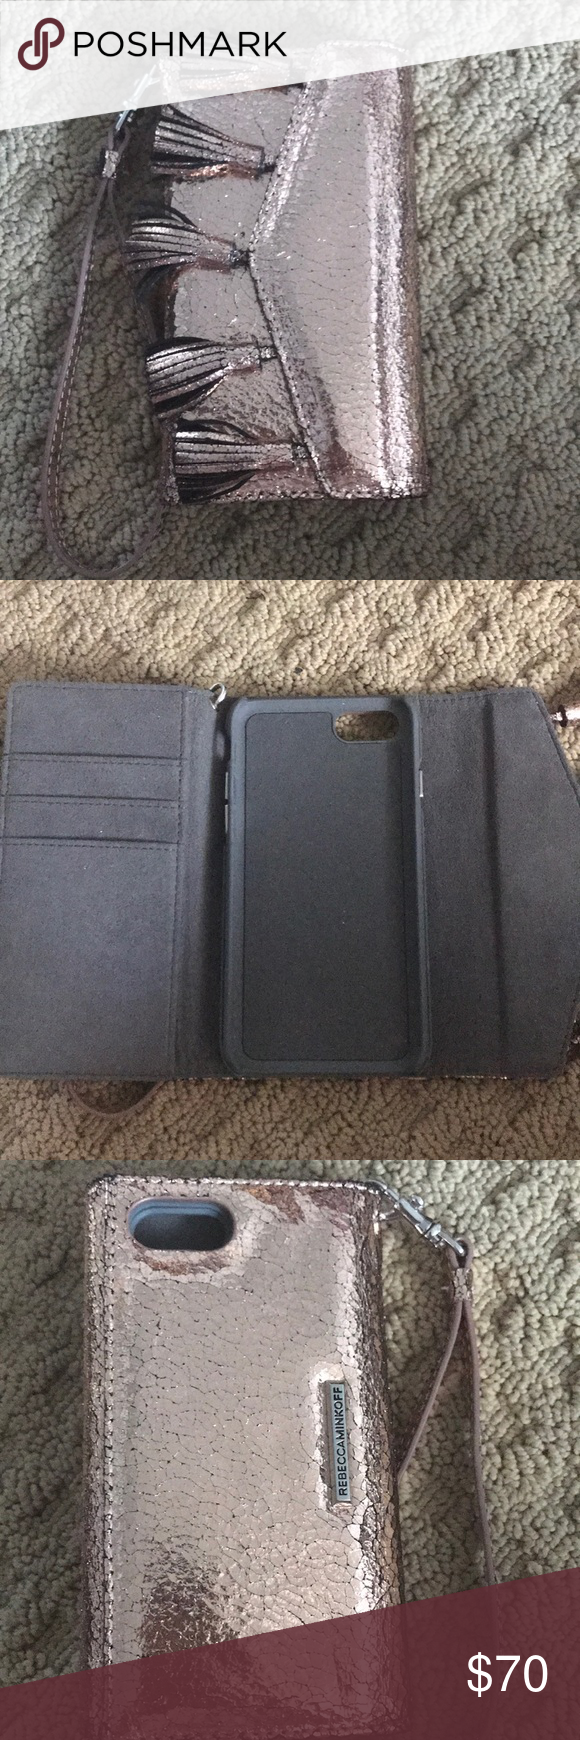 Rebecca Minkoff Phone Case Rebecca Minkoff metallic pink phone case. Fits an iphone 6/7, and has three card holders. Never used and authentic. No trades Rebecca Minkoff Accessories Phone Cases